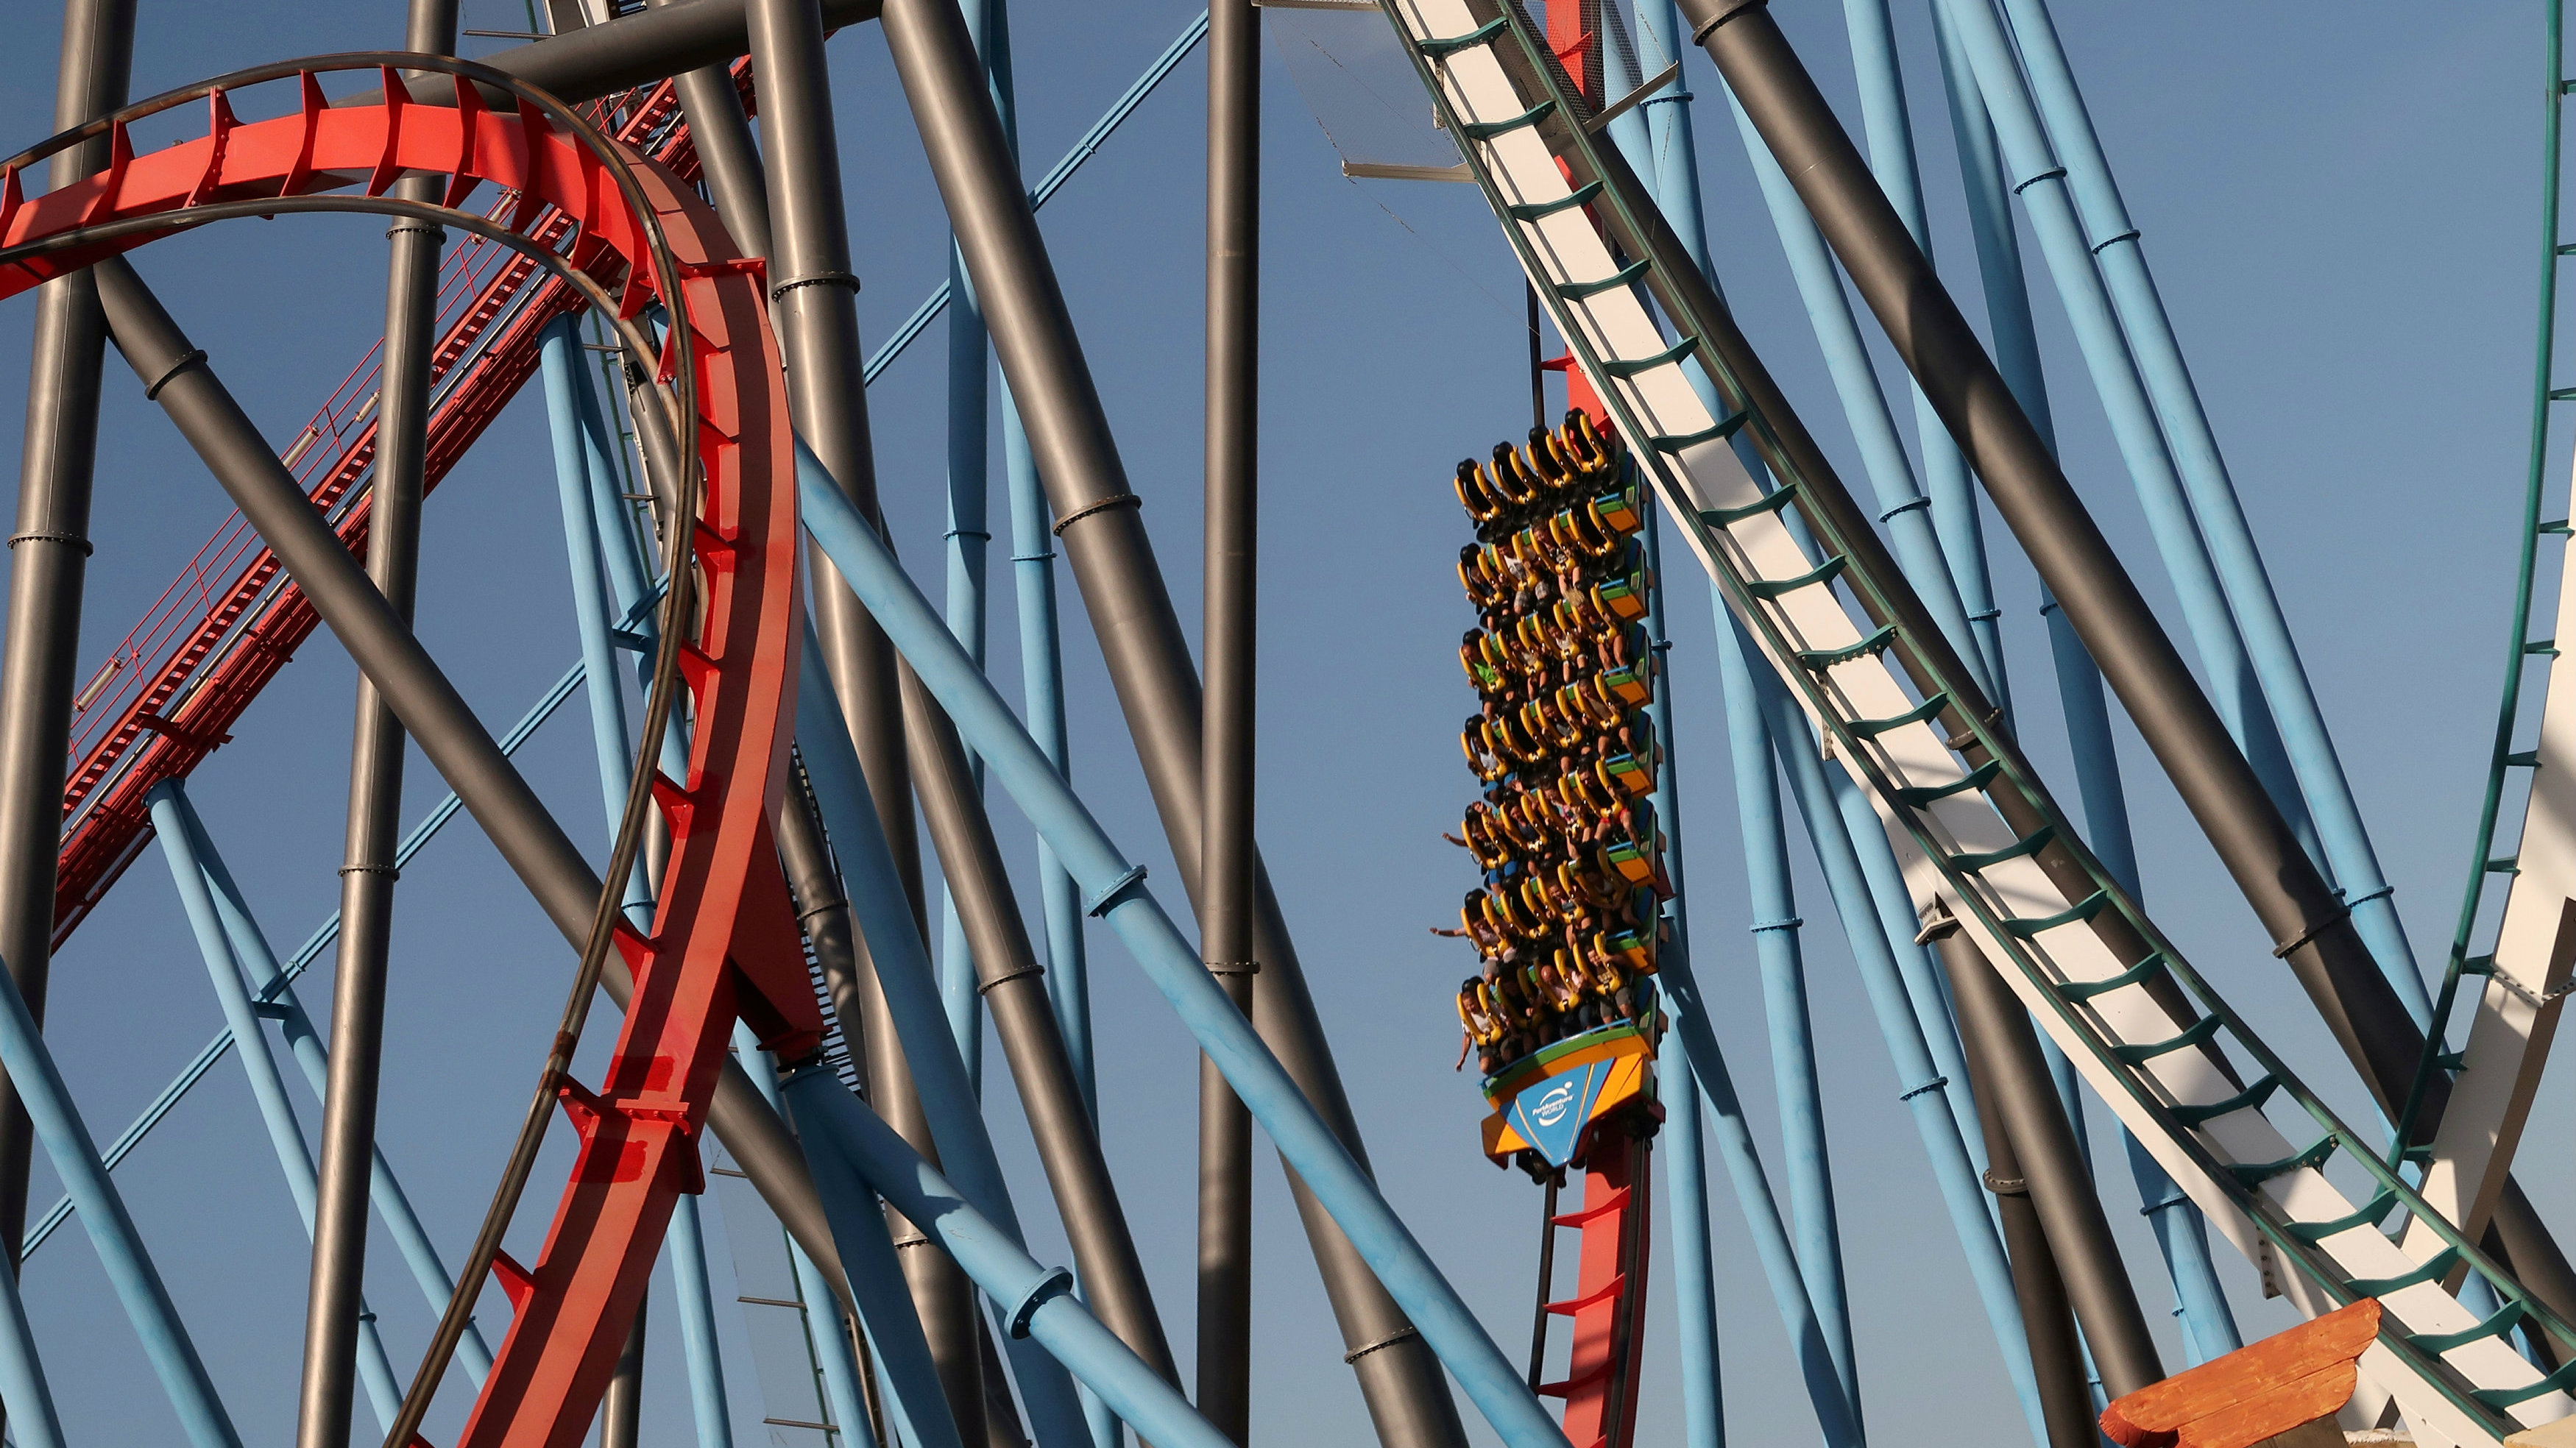 Carnival is building a rollercoaster on a cruise ship. What could go wrong?